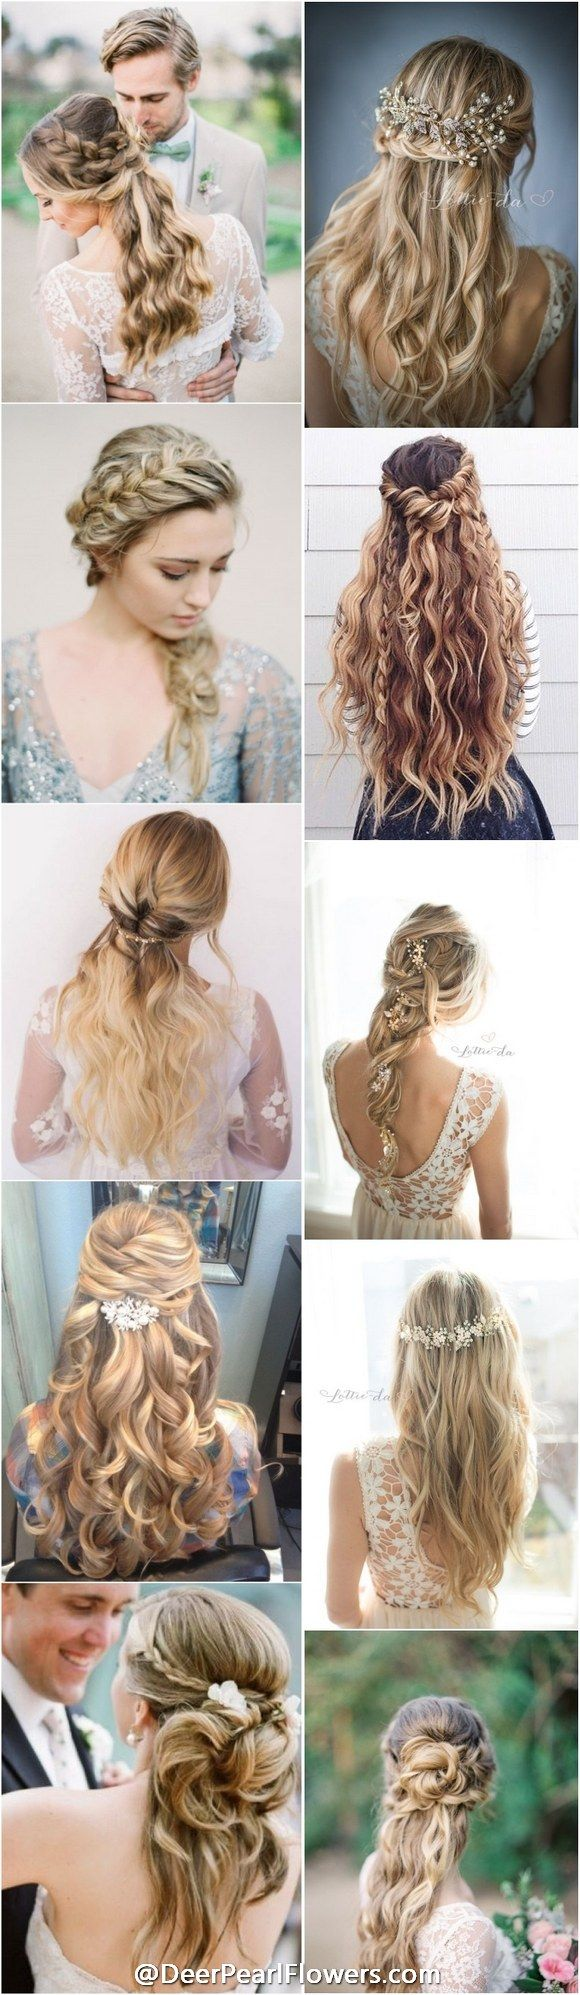 best Hairs images on Pinterest Hairstyle ideas Tuto coiffure